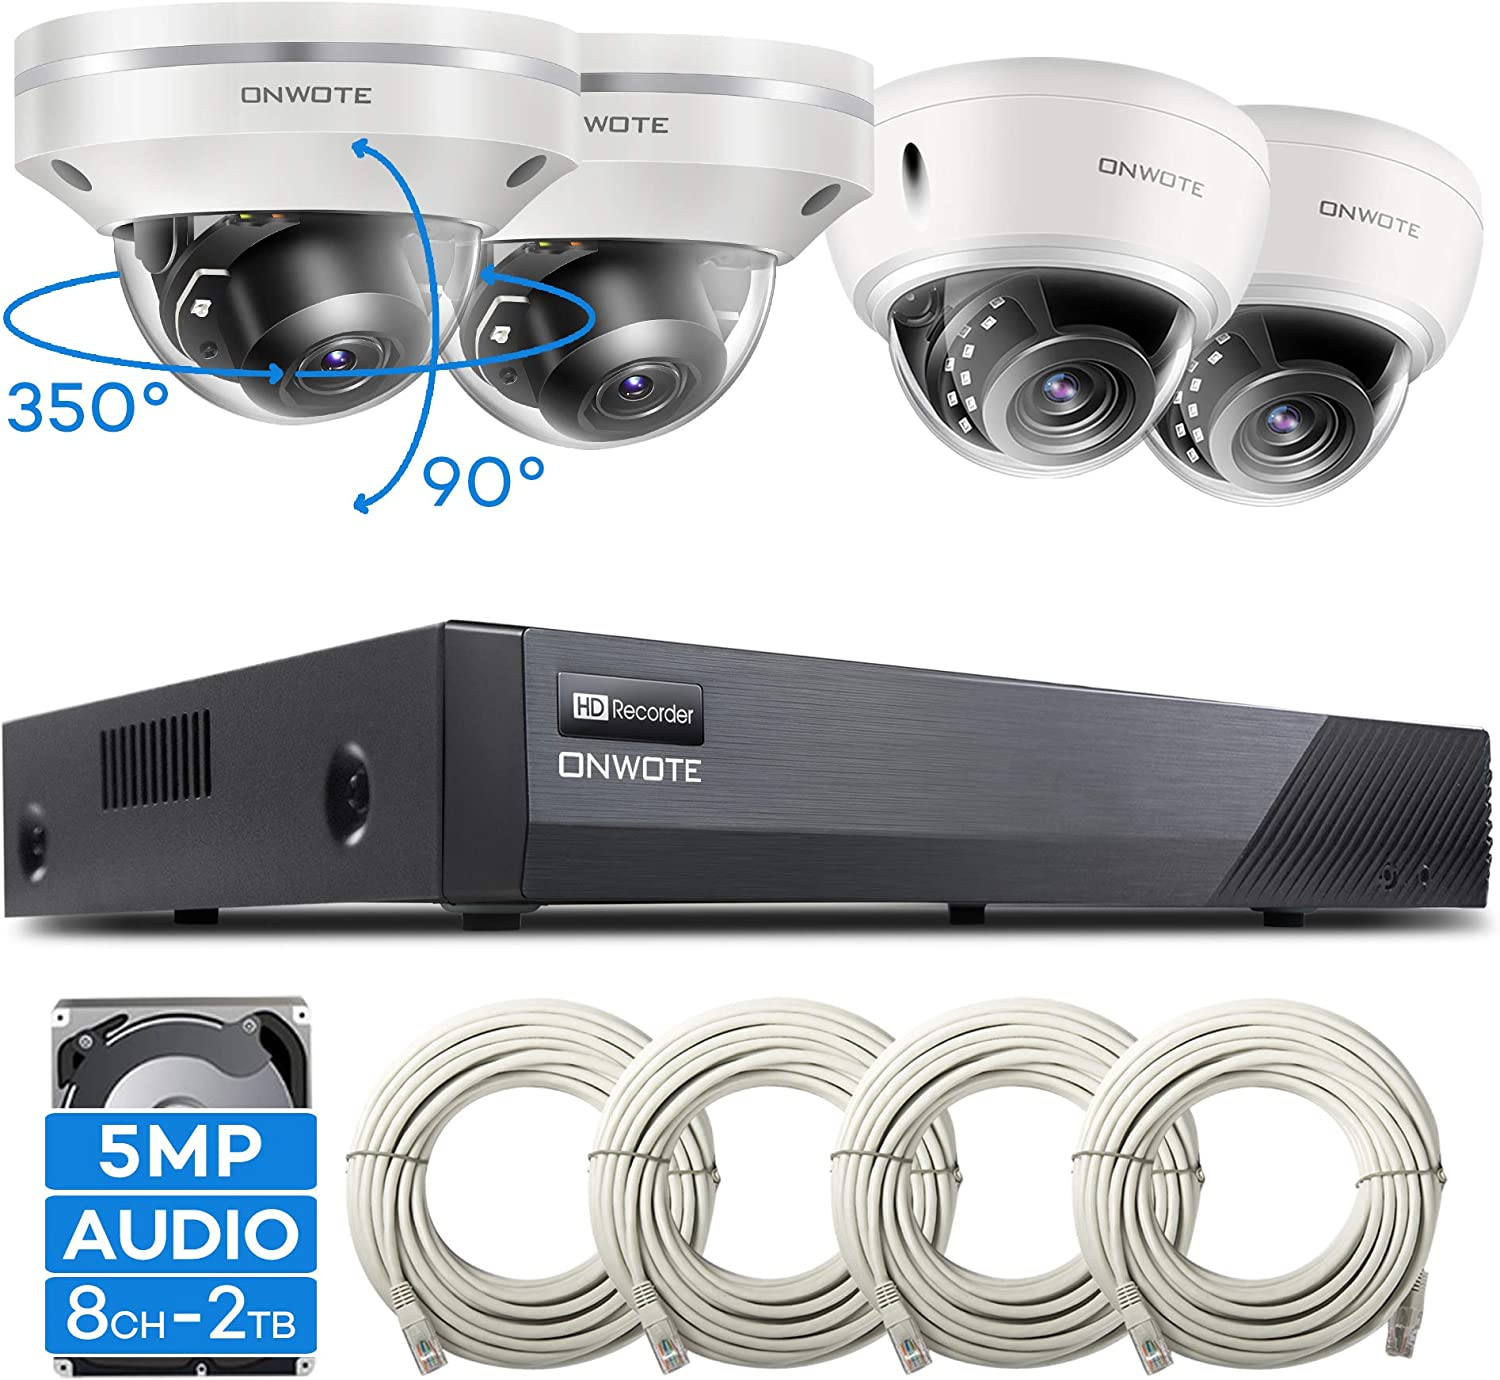 【PTZ】 ONWOTE 8CH 5MP Super HD PoE Security Camera System Dome, (2) 355° Pan 90° Tilt 3X Optical Zoom PoE Cameras, (2) Outdoor PoE IP Cameras, 100ft IR, 8CH 5MP H.265 NVR, Add 4 More Cameras